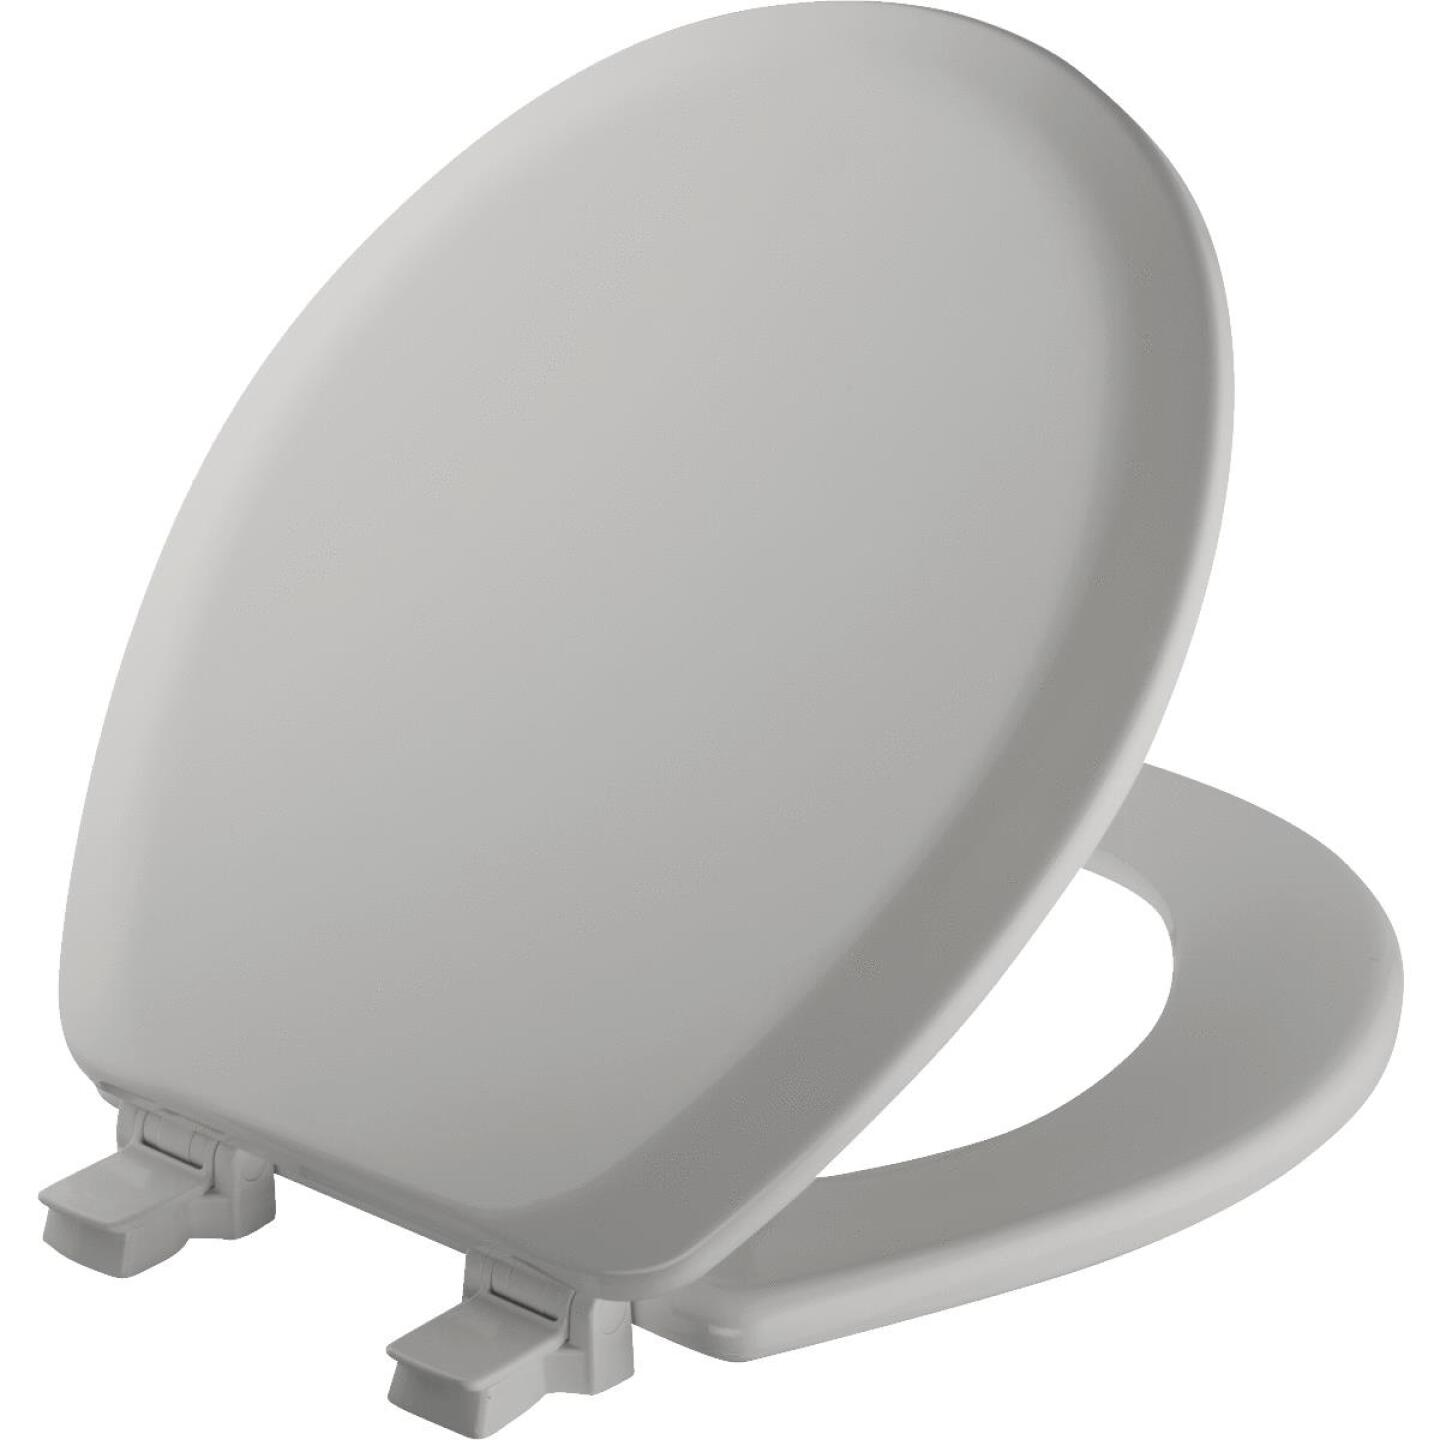 Mayfair Advantage Round Closed Front Silver Wood Toilet Seat Image 1